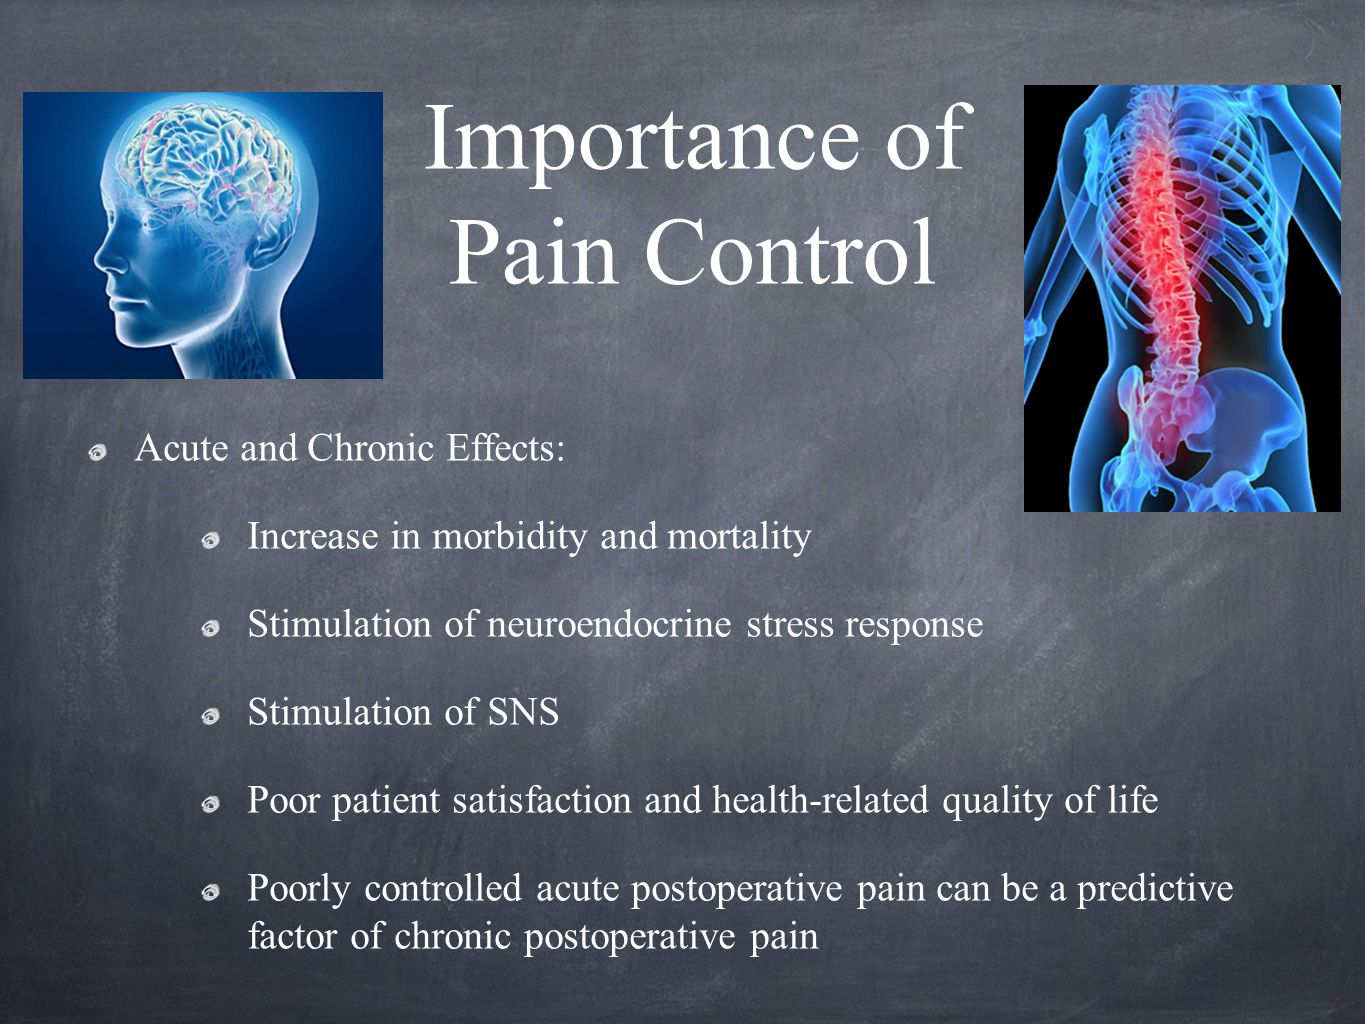 Importance of Pain Control